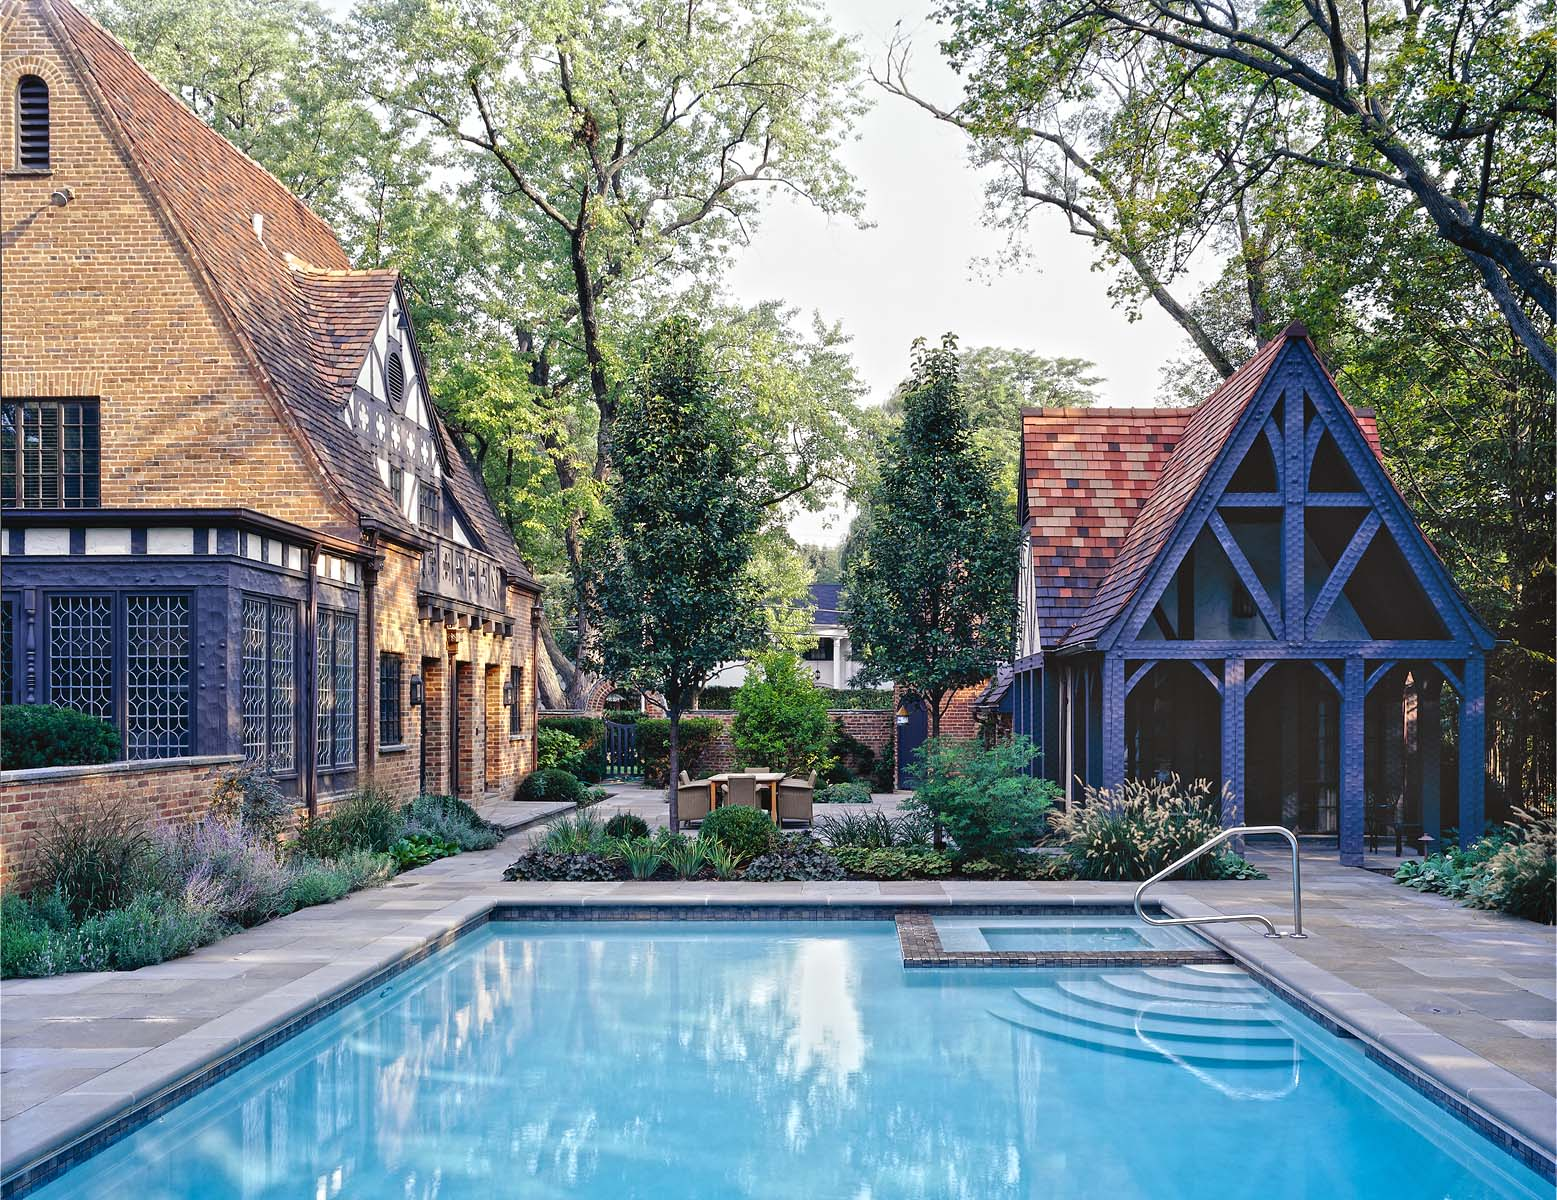 HISTORIC BEMAN HOUSE WINS AWARD - The Historic Beman House wins Winnetka's 2005 Preservation Award from the Winnetka Landmarks Preservation Commission. posted May 01, 2005 at 8:15am